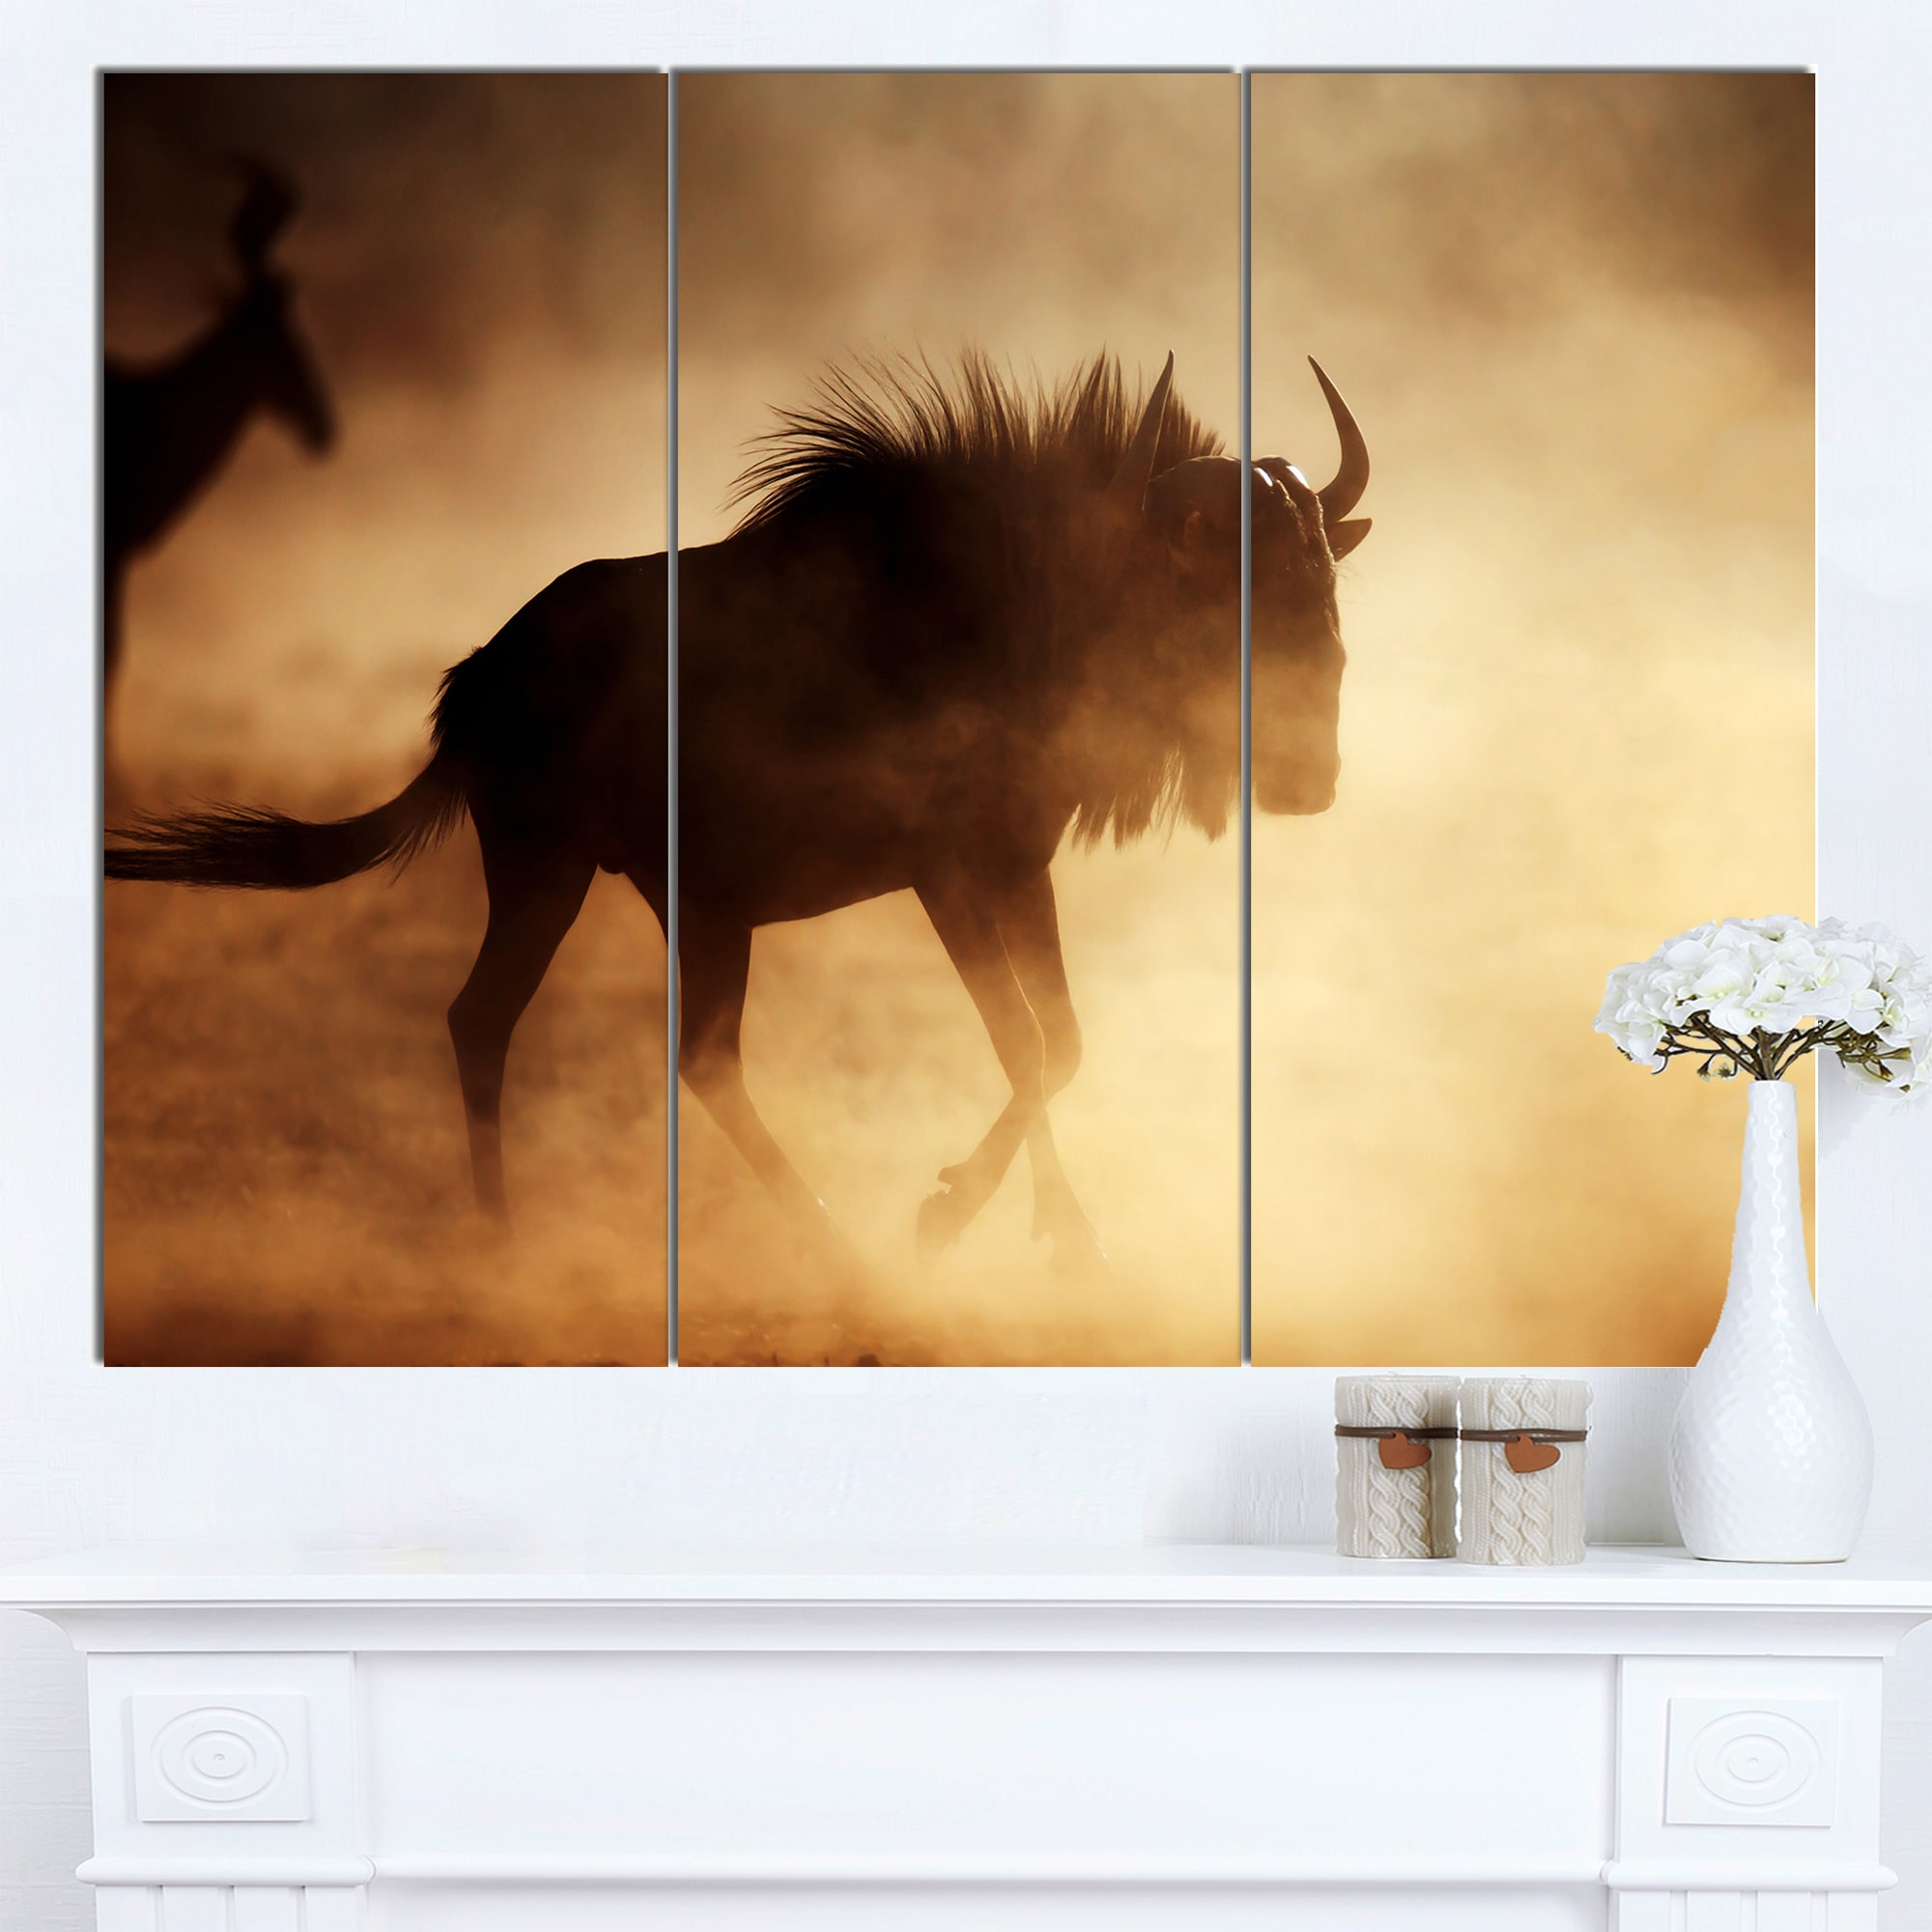 3-piece Set, Photography Art Gallery | Shop our Best Home Goods ...